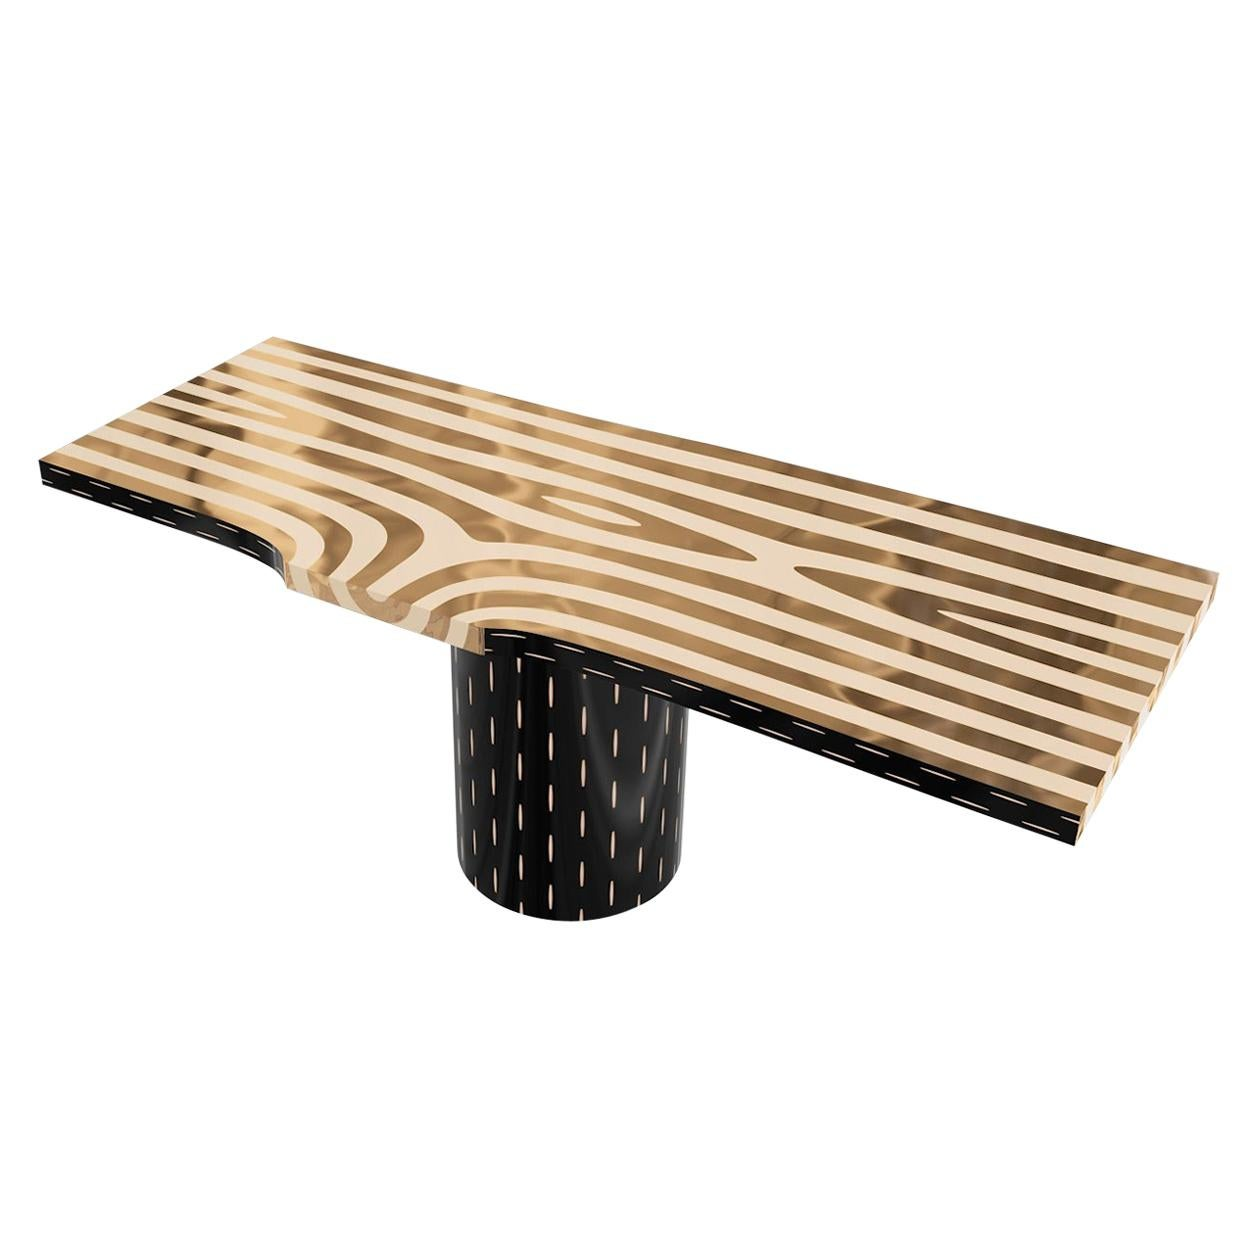 Forest Dining Table with Brass Inlay by Marcantonio